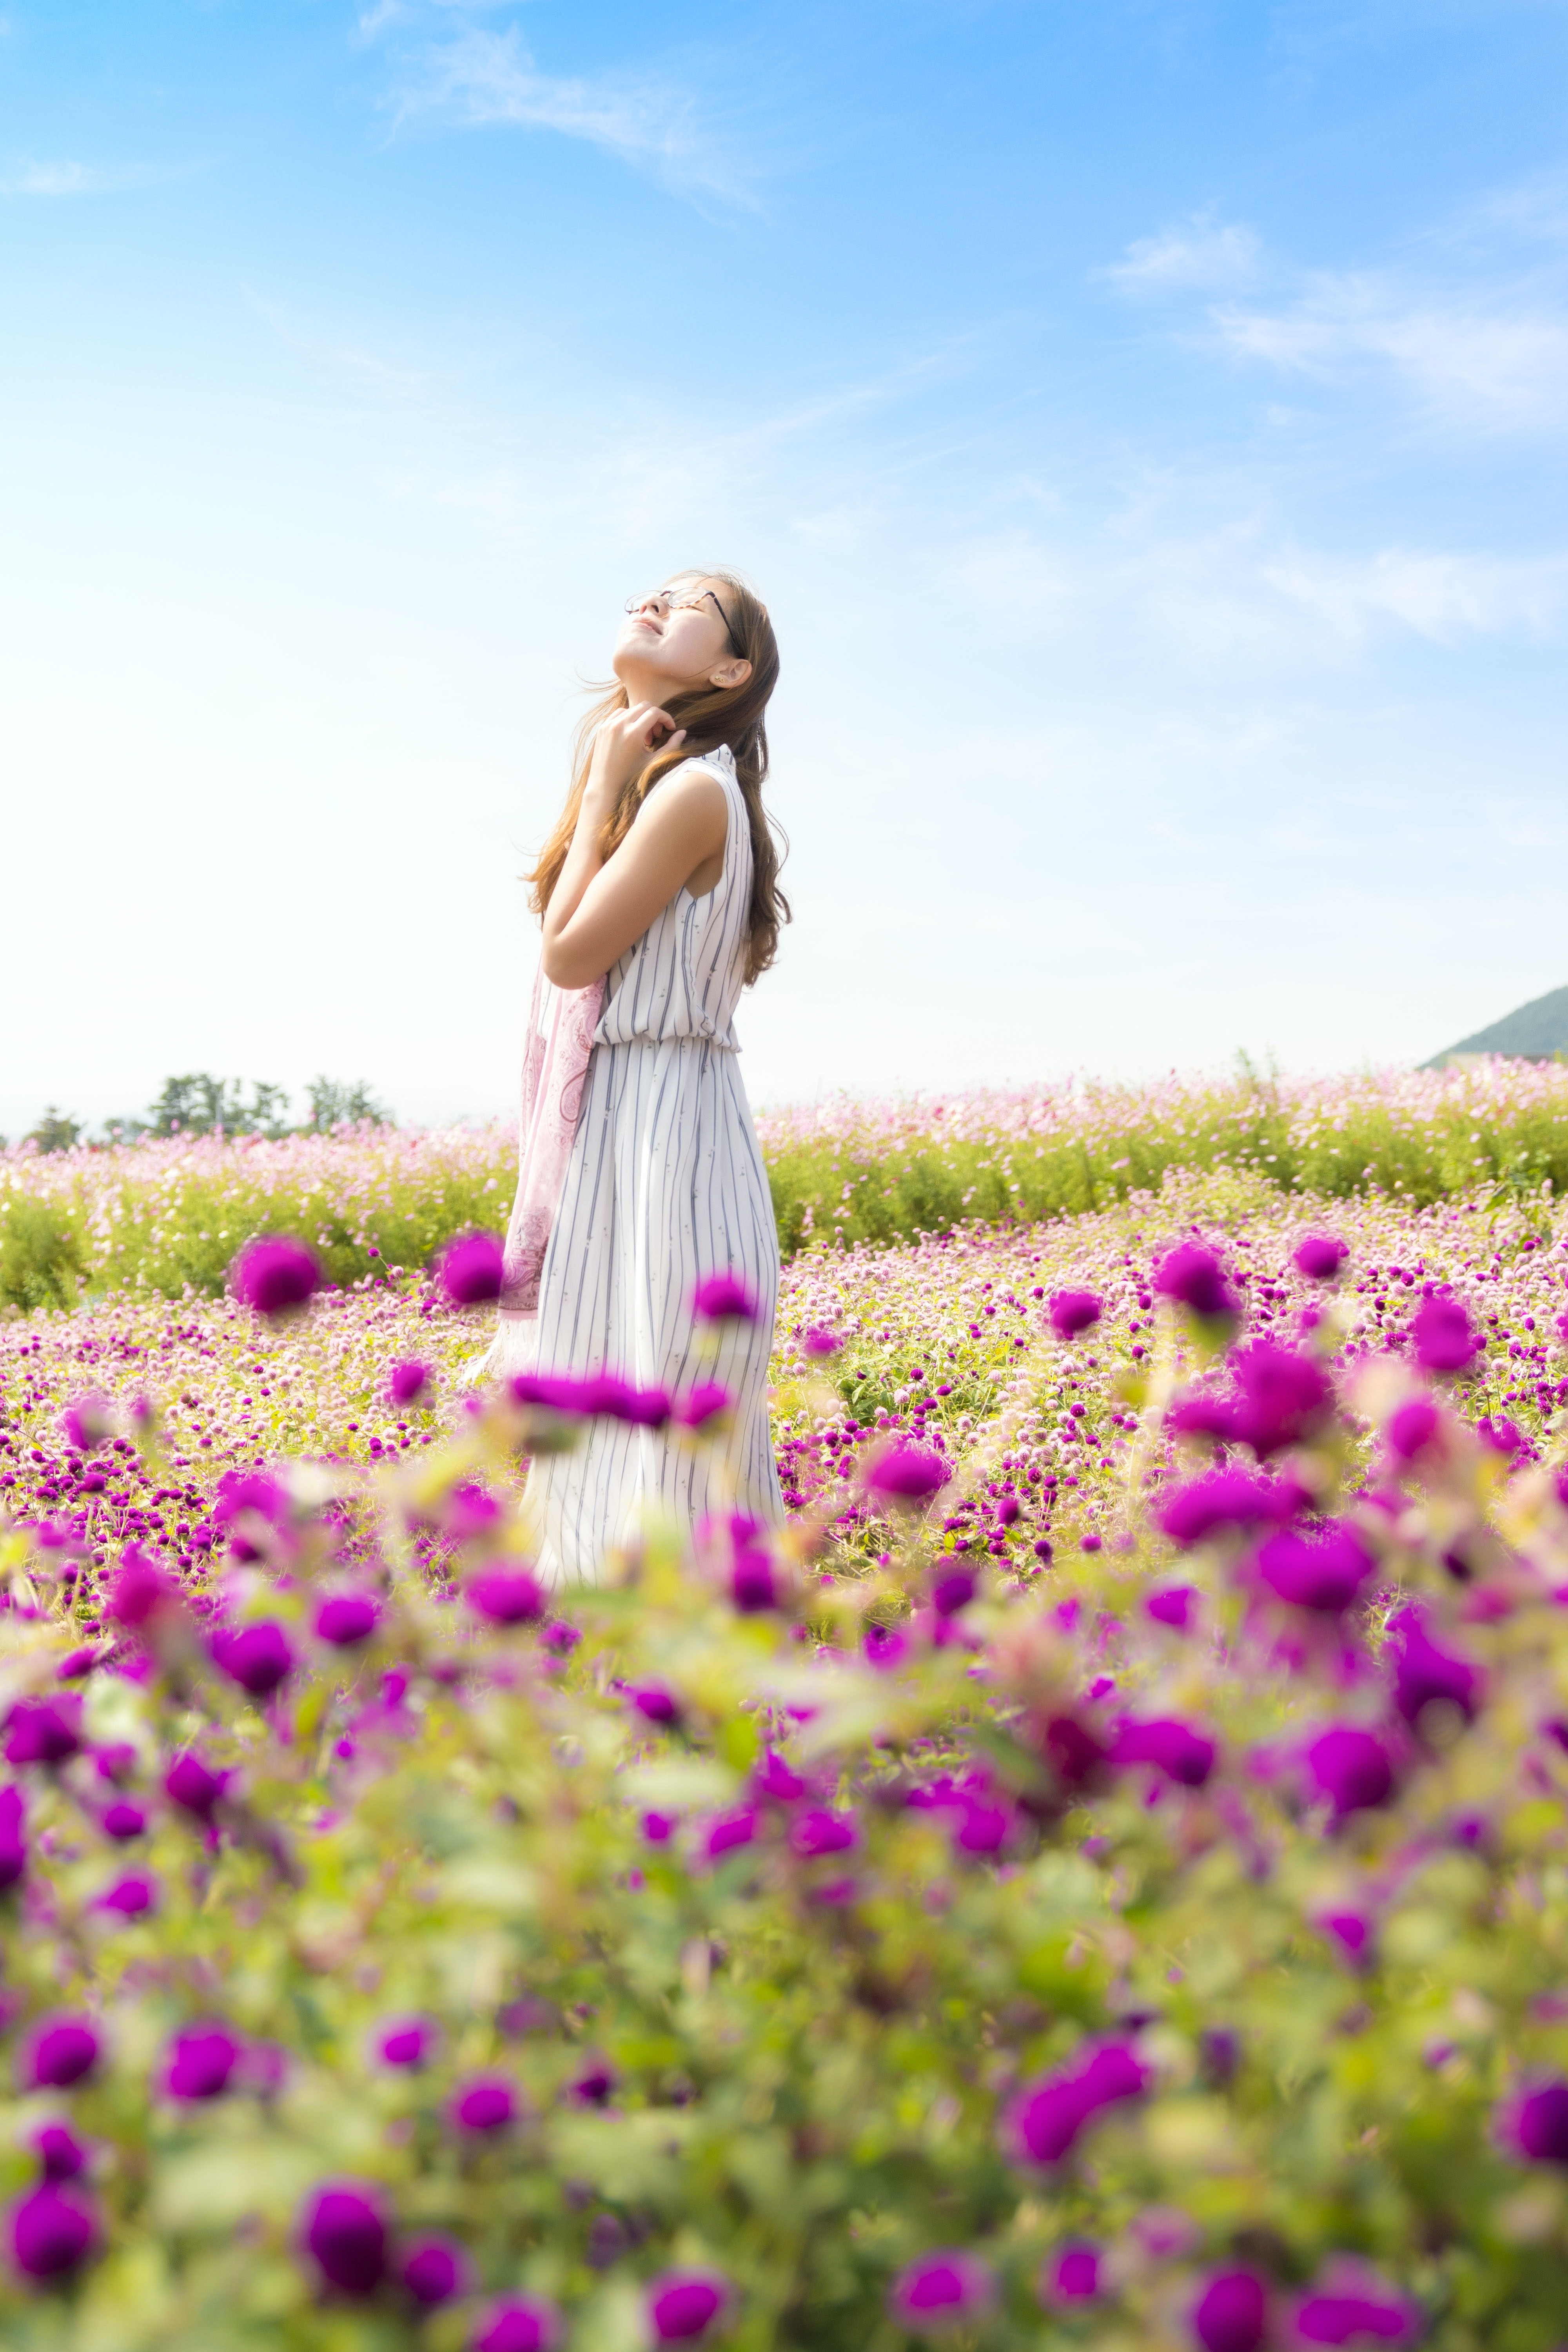 woman wearing white and gray striped sleeveless dress smelling the air standing in the pink flower field at daytime